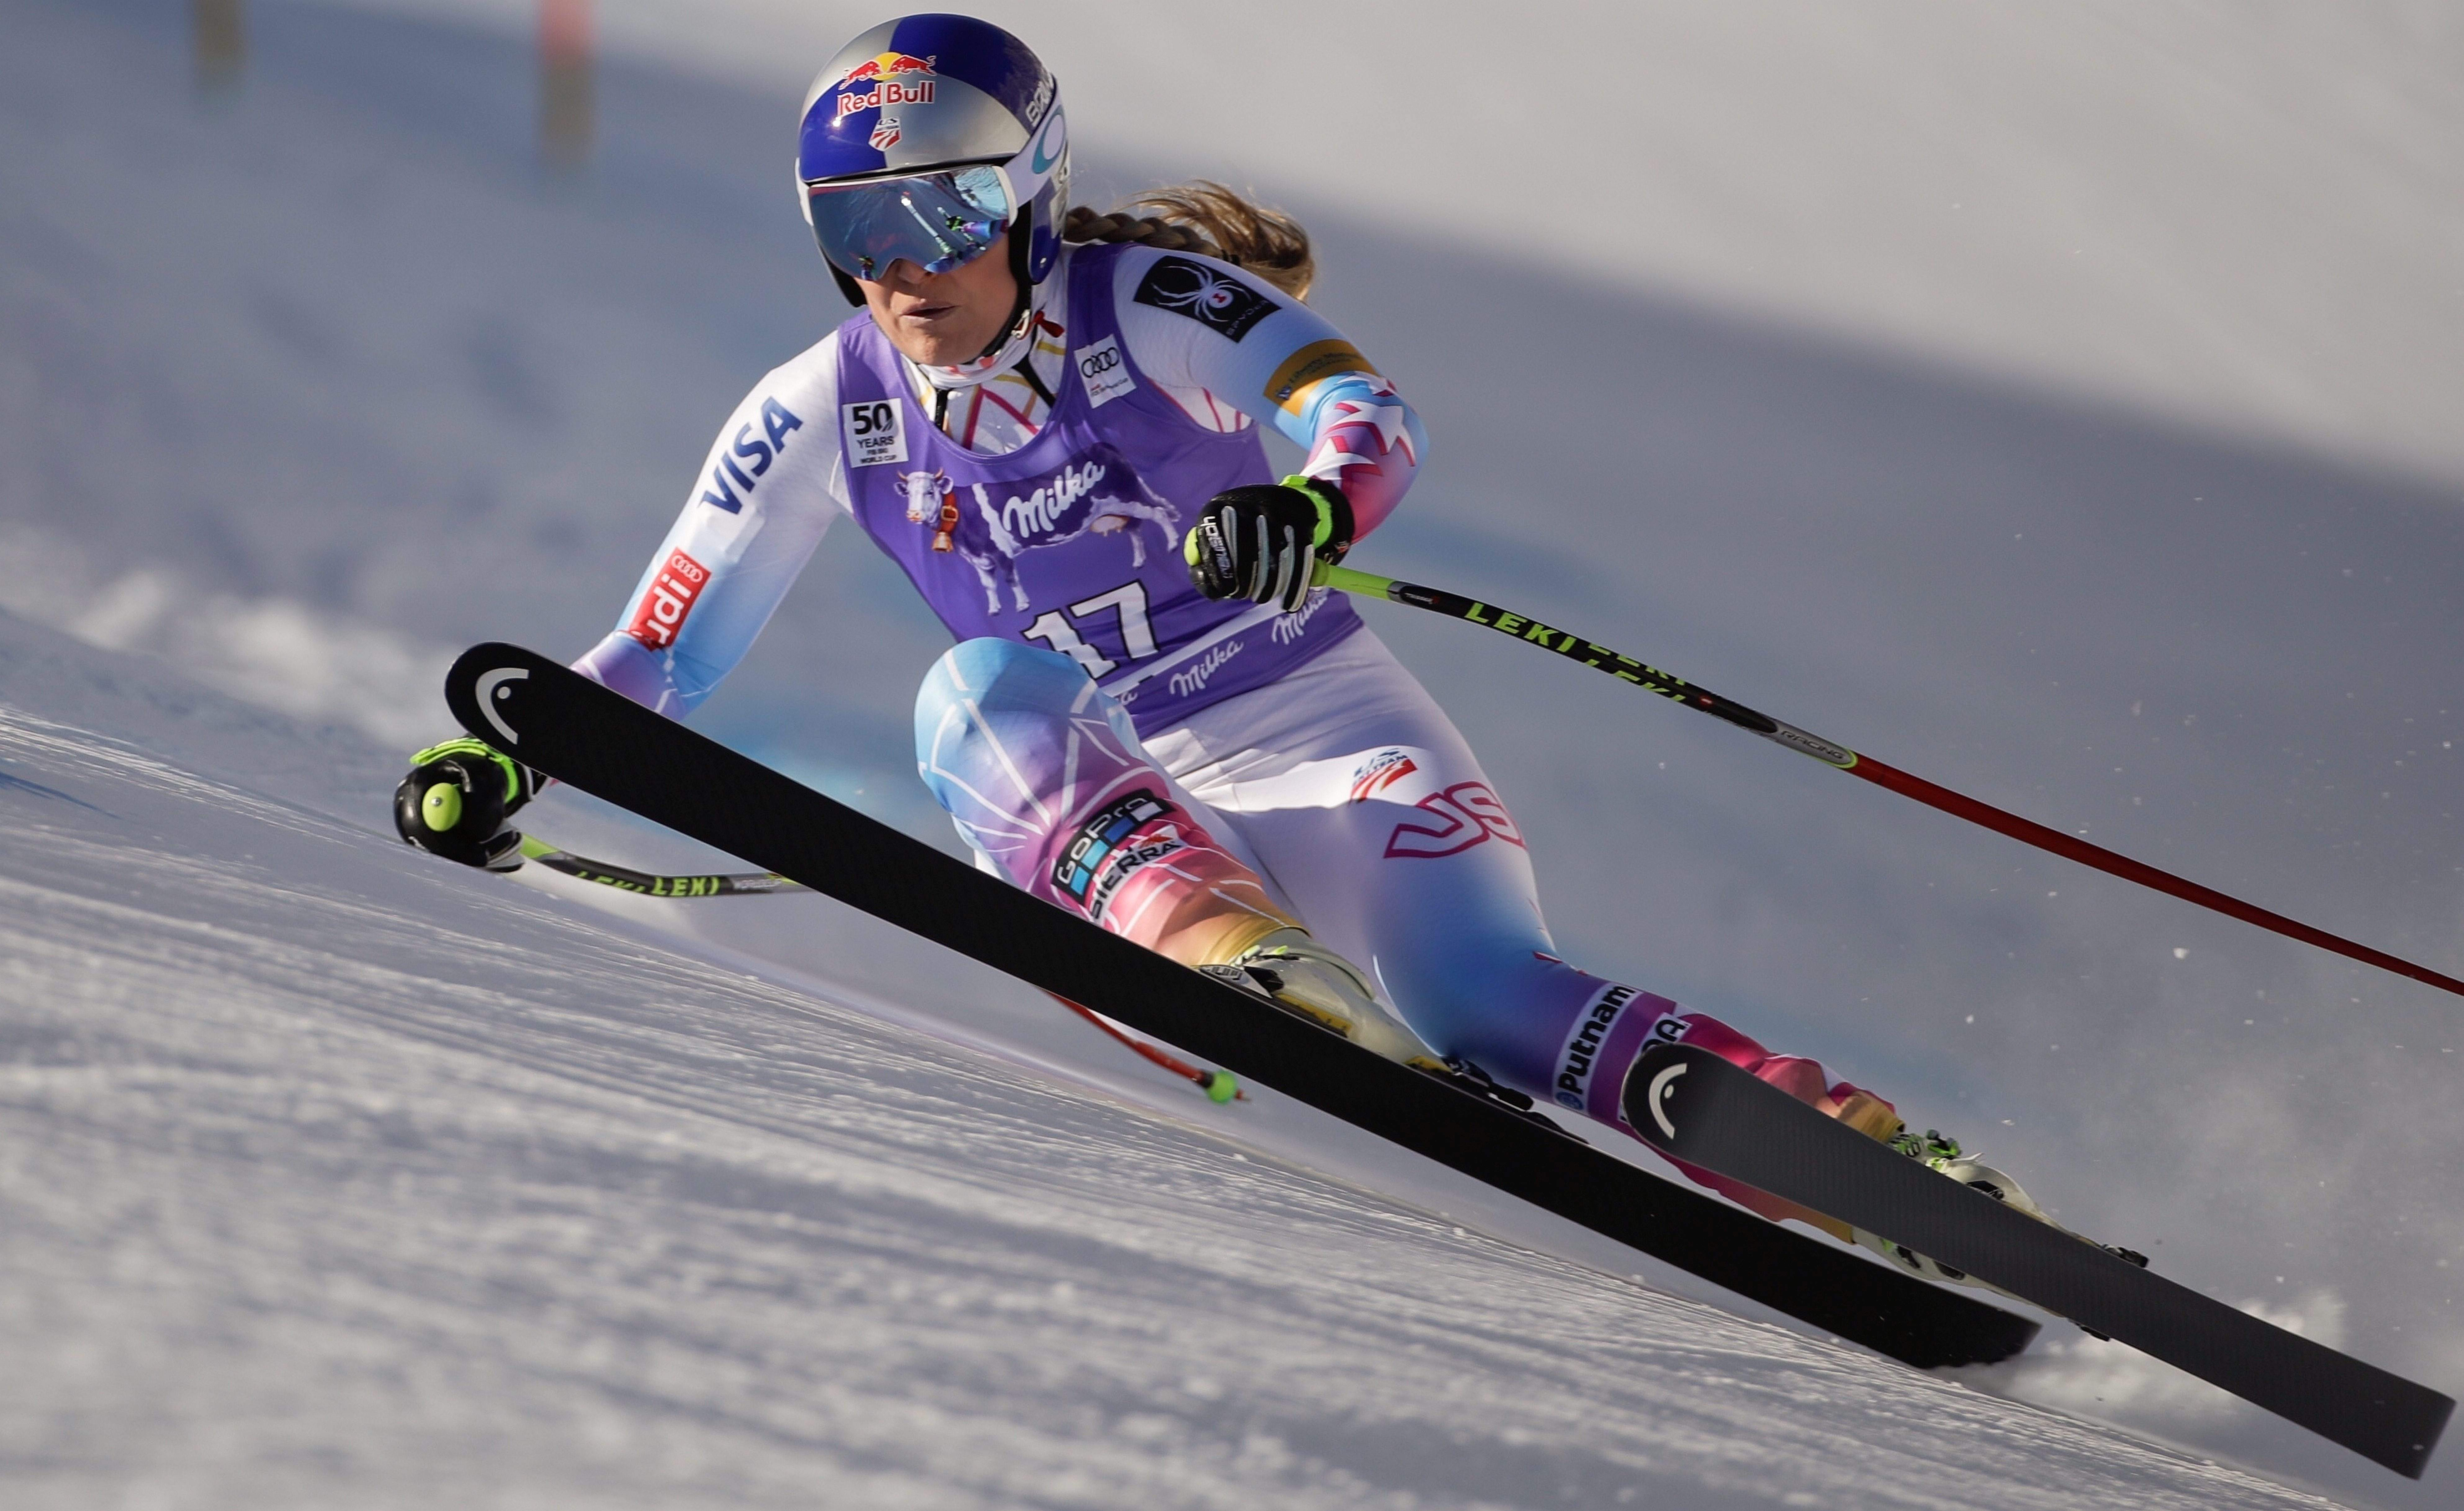 Vonn bombs as Schmidhofer wins world super-G ski